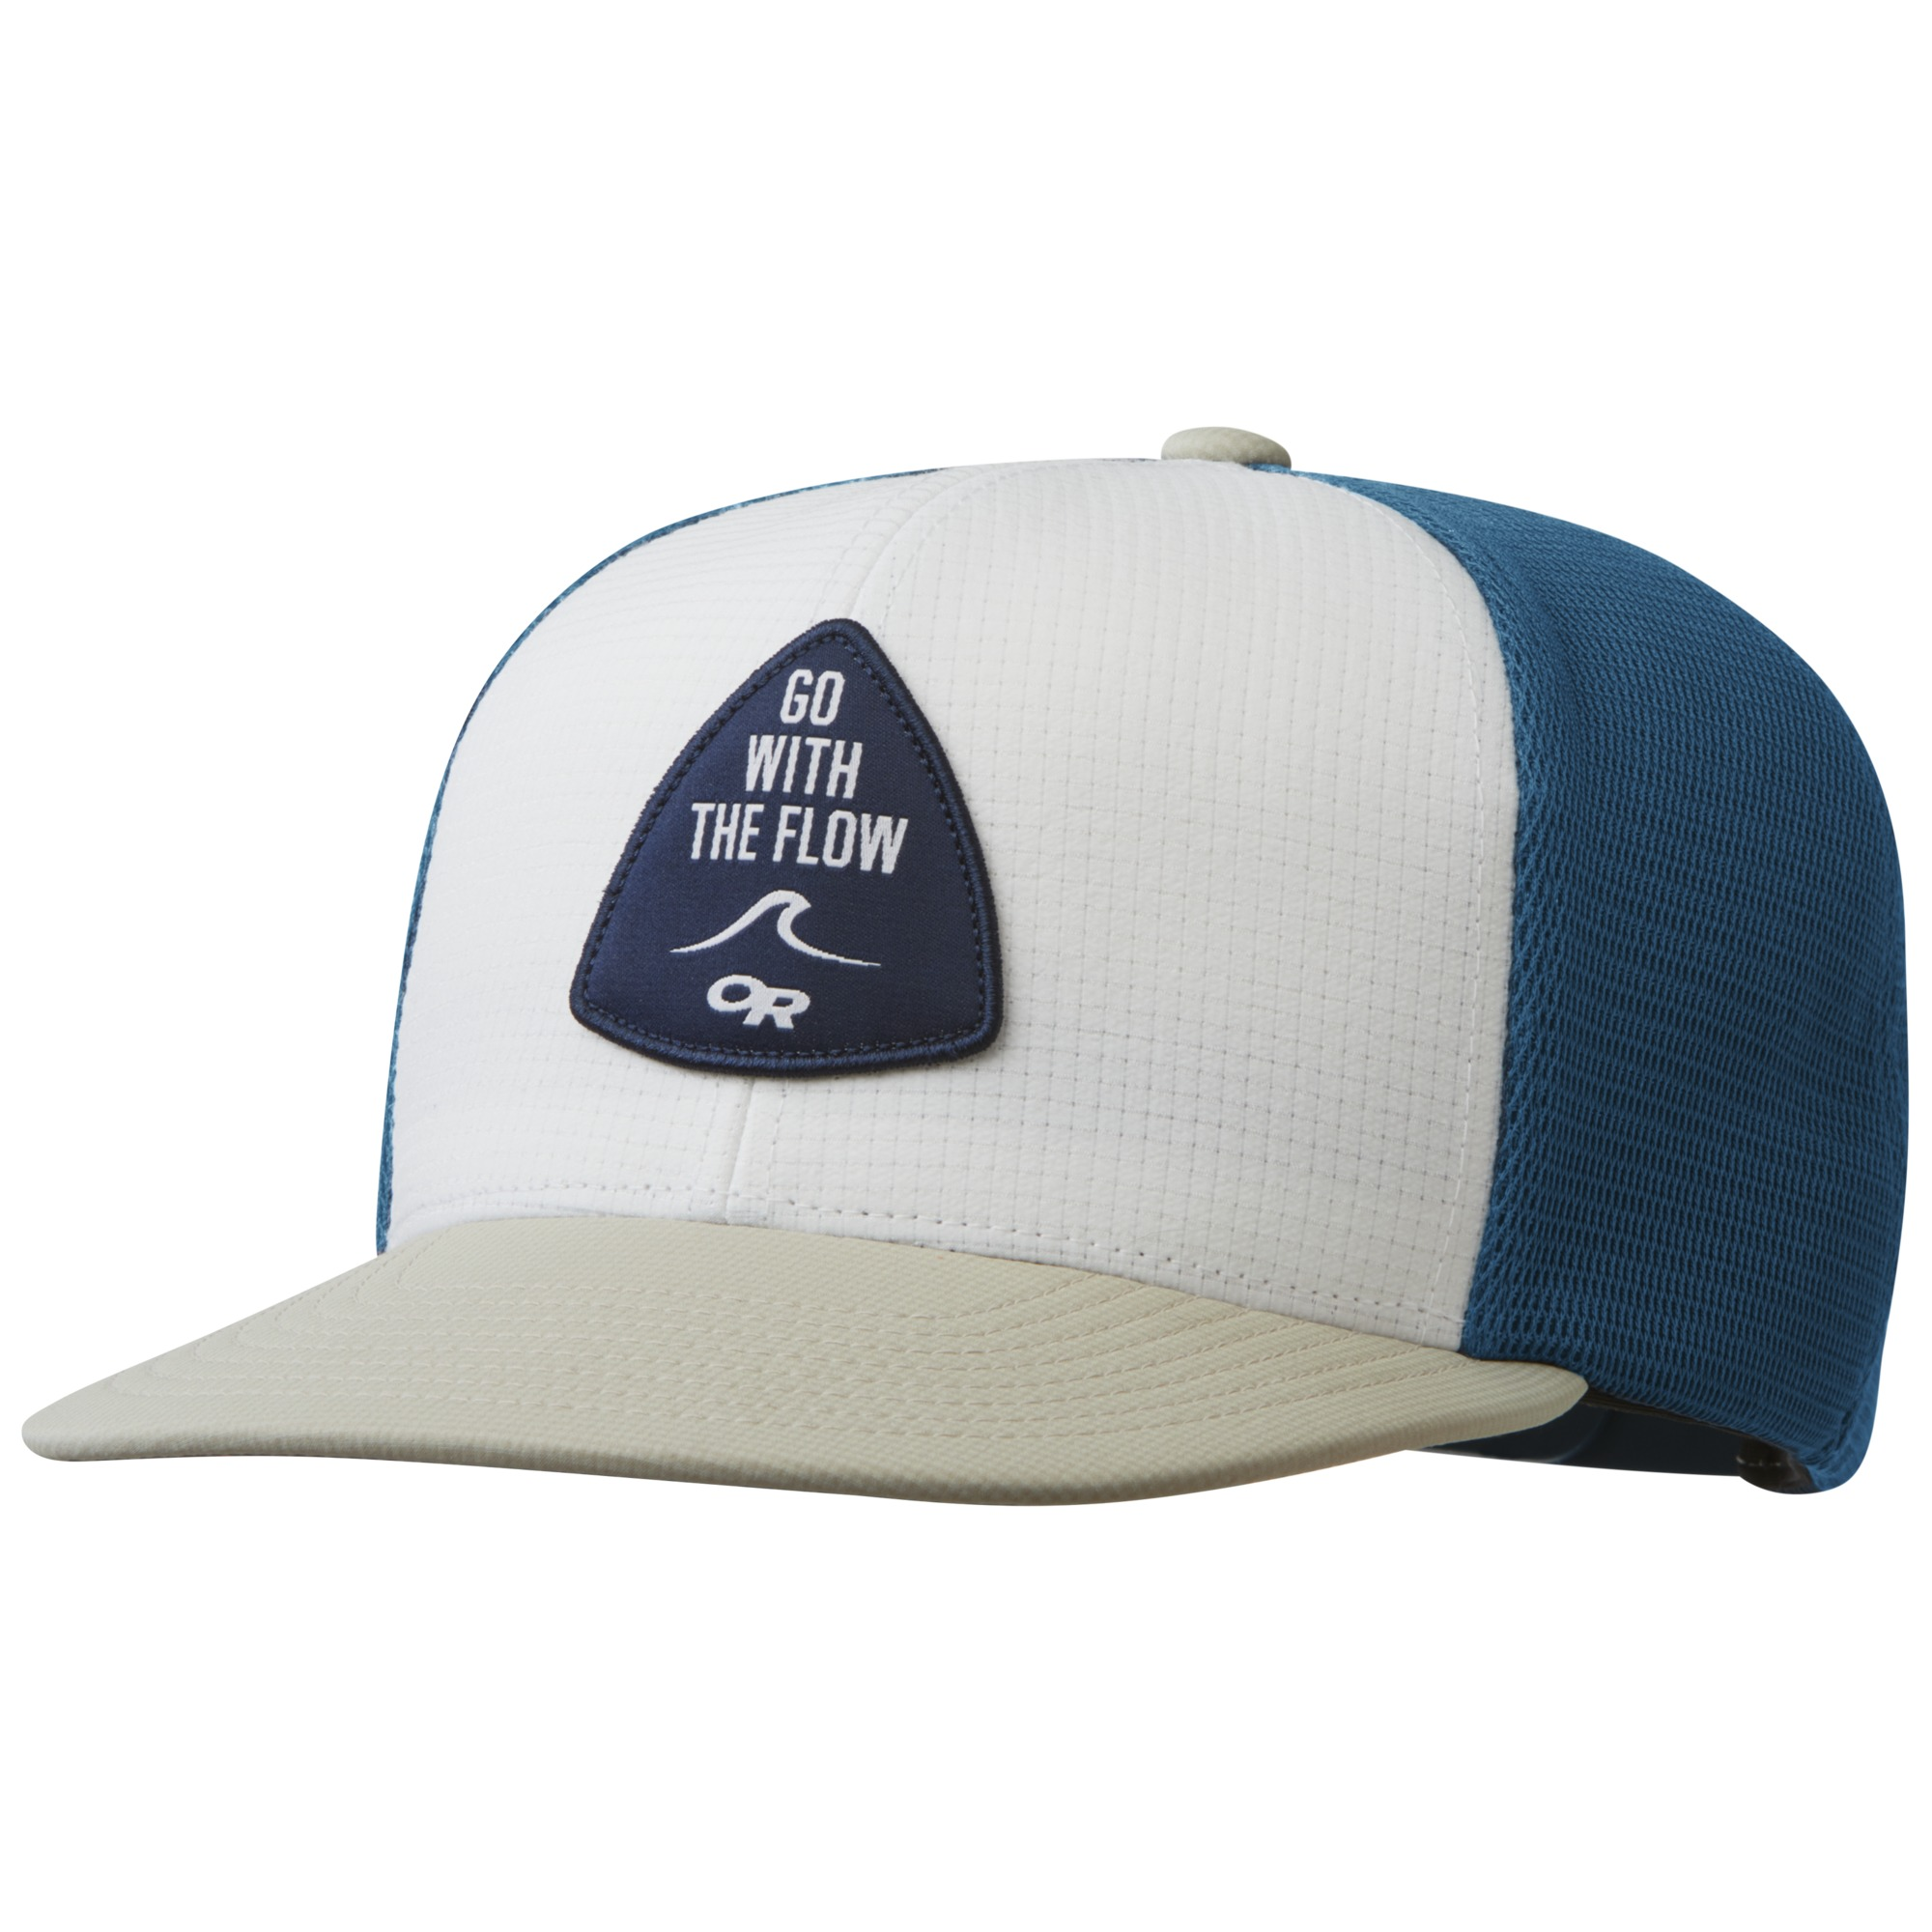 515123daa29bb Performance Trucker - Go with the Flow - white hazelwood peacock ...